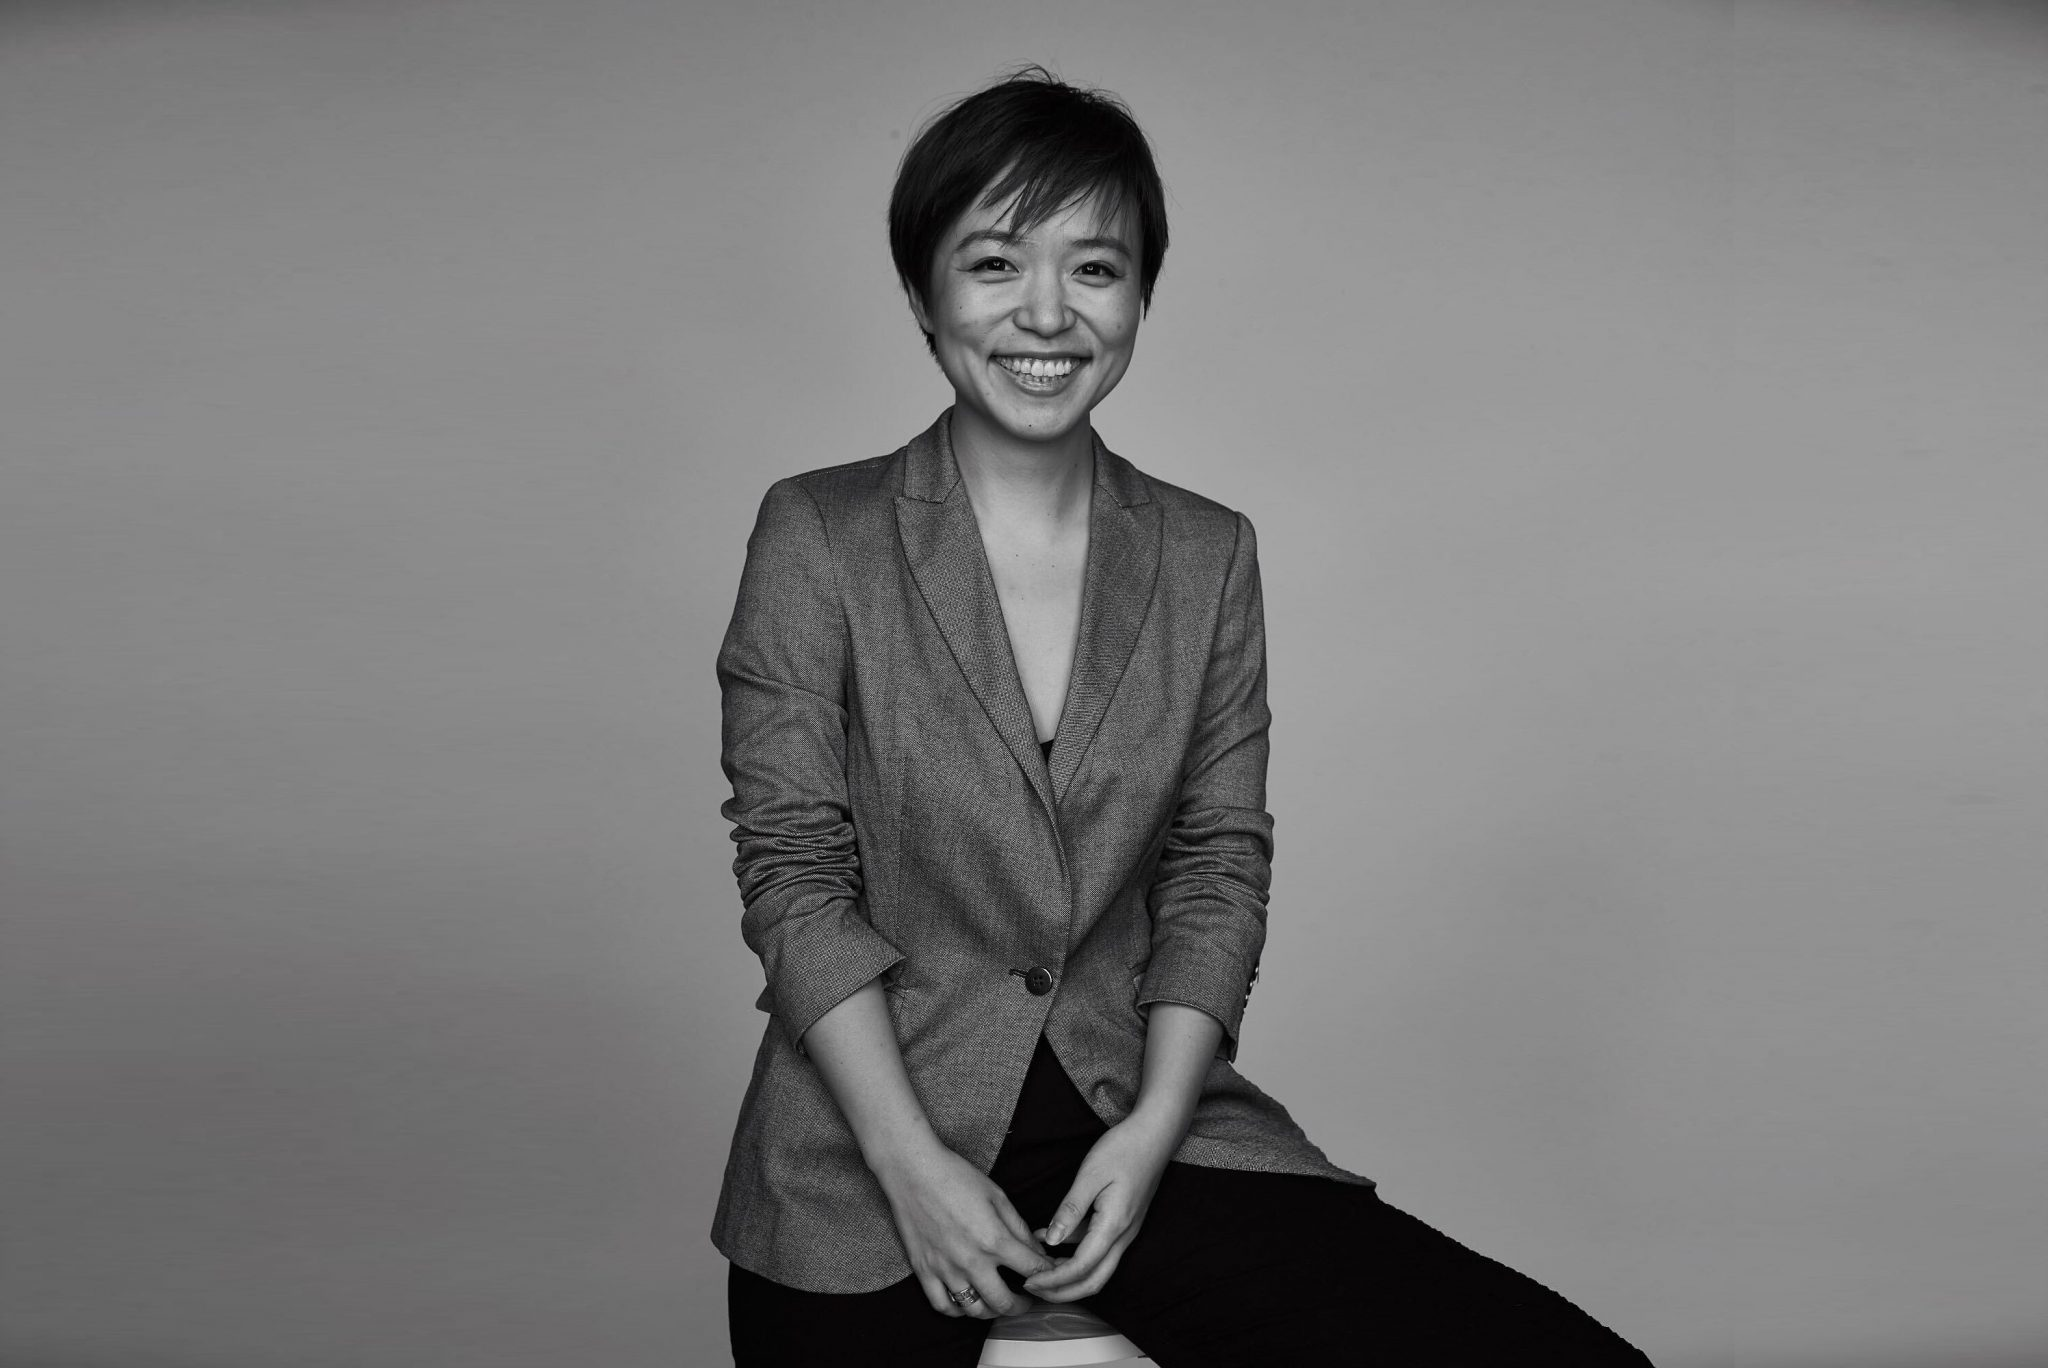 Mode's new CCO Rita Liu